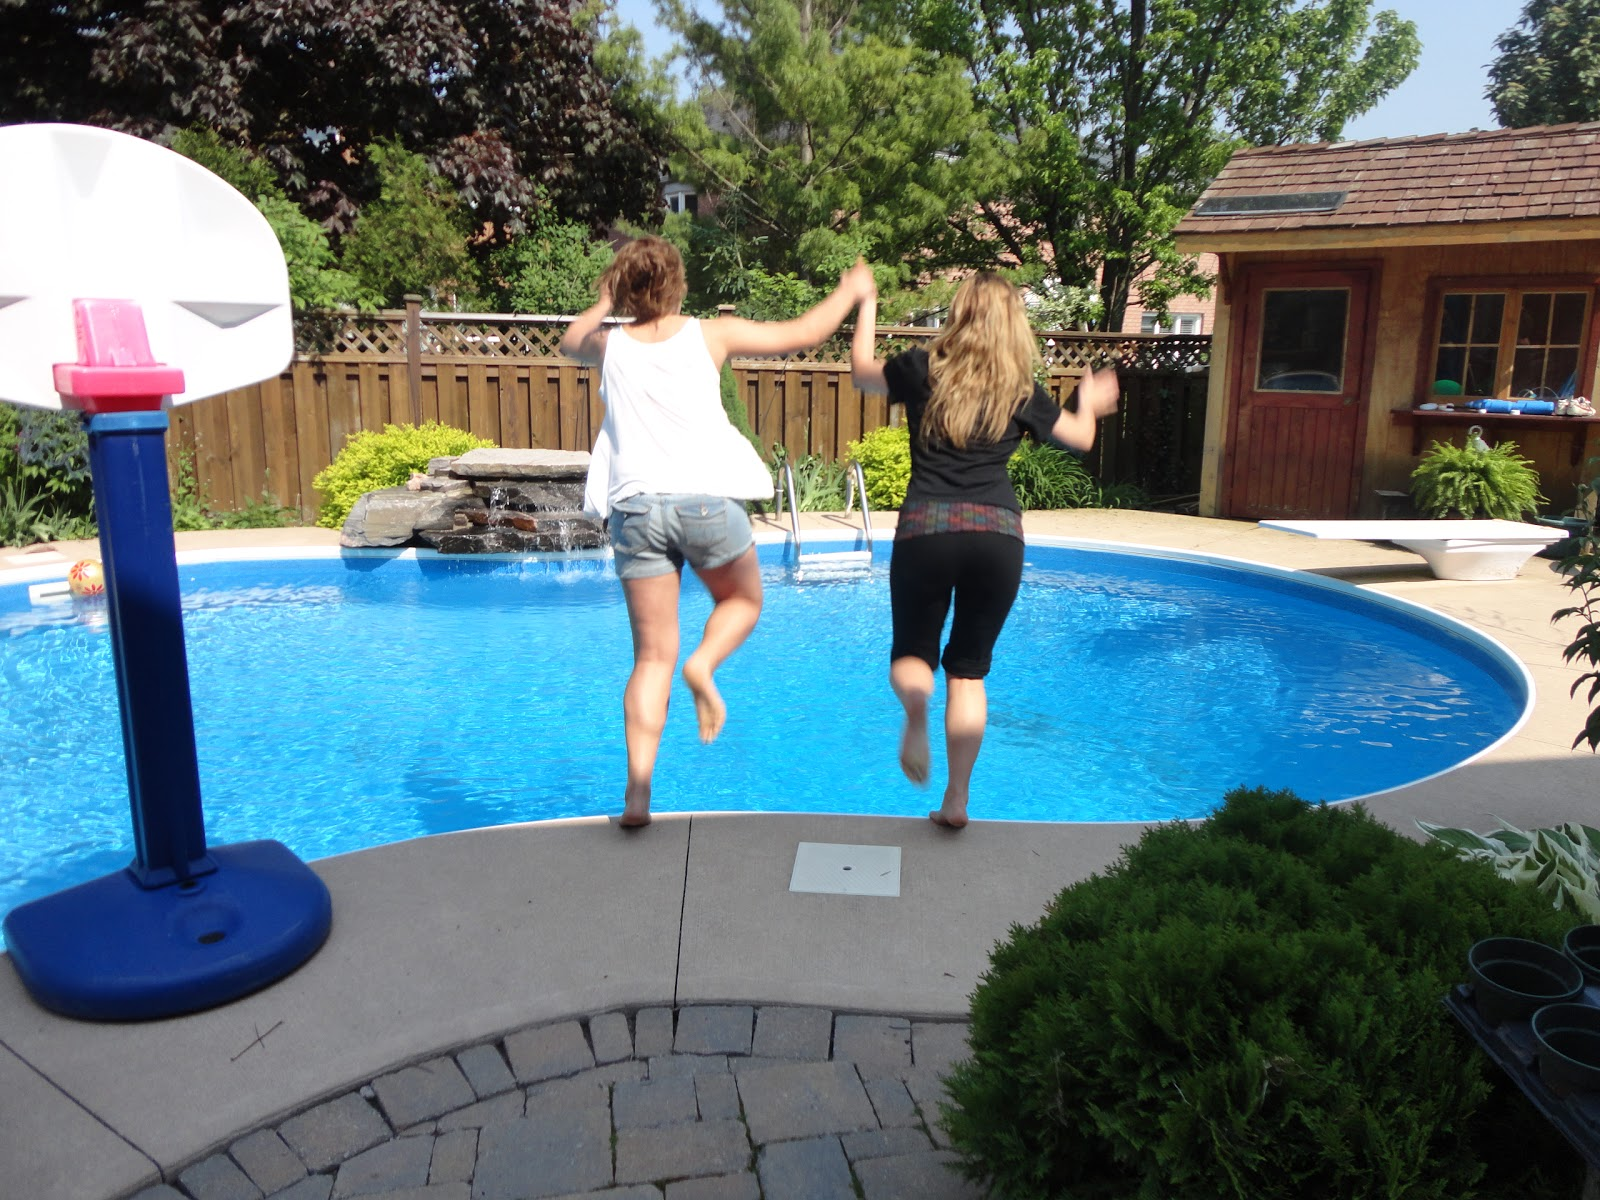 3ccaa2fb30 When I got home I ran to the backyard where my sister was reading and I  convinced her to jump in the pool with me... FULLY DRESSED!